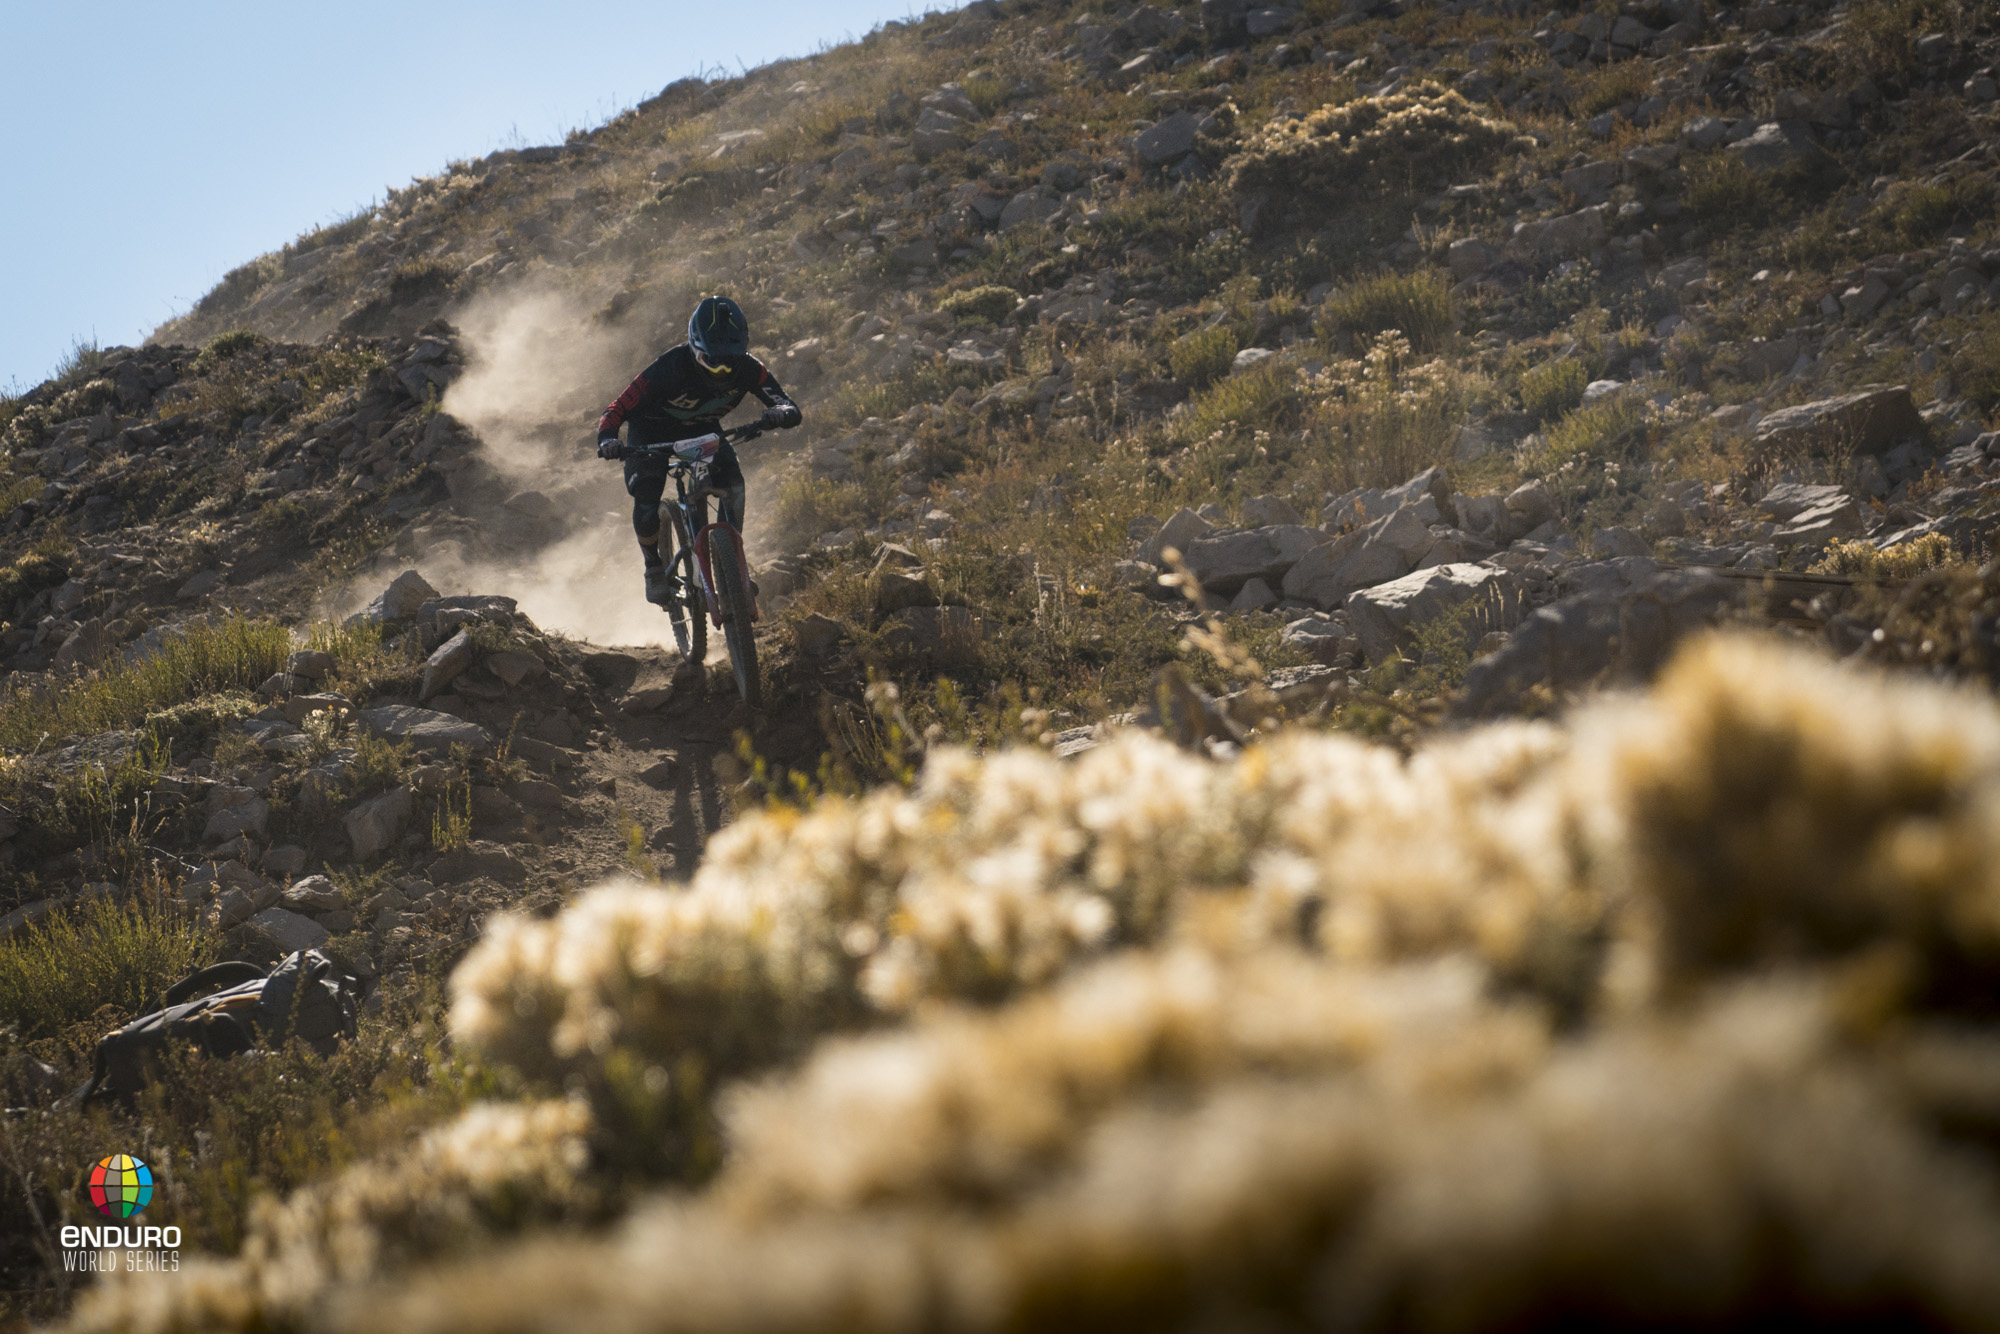 Adrien Dailly leaves a wake of dust on his way down stage 3.